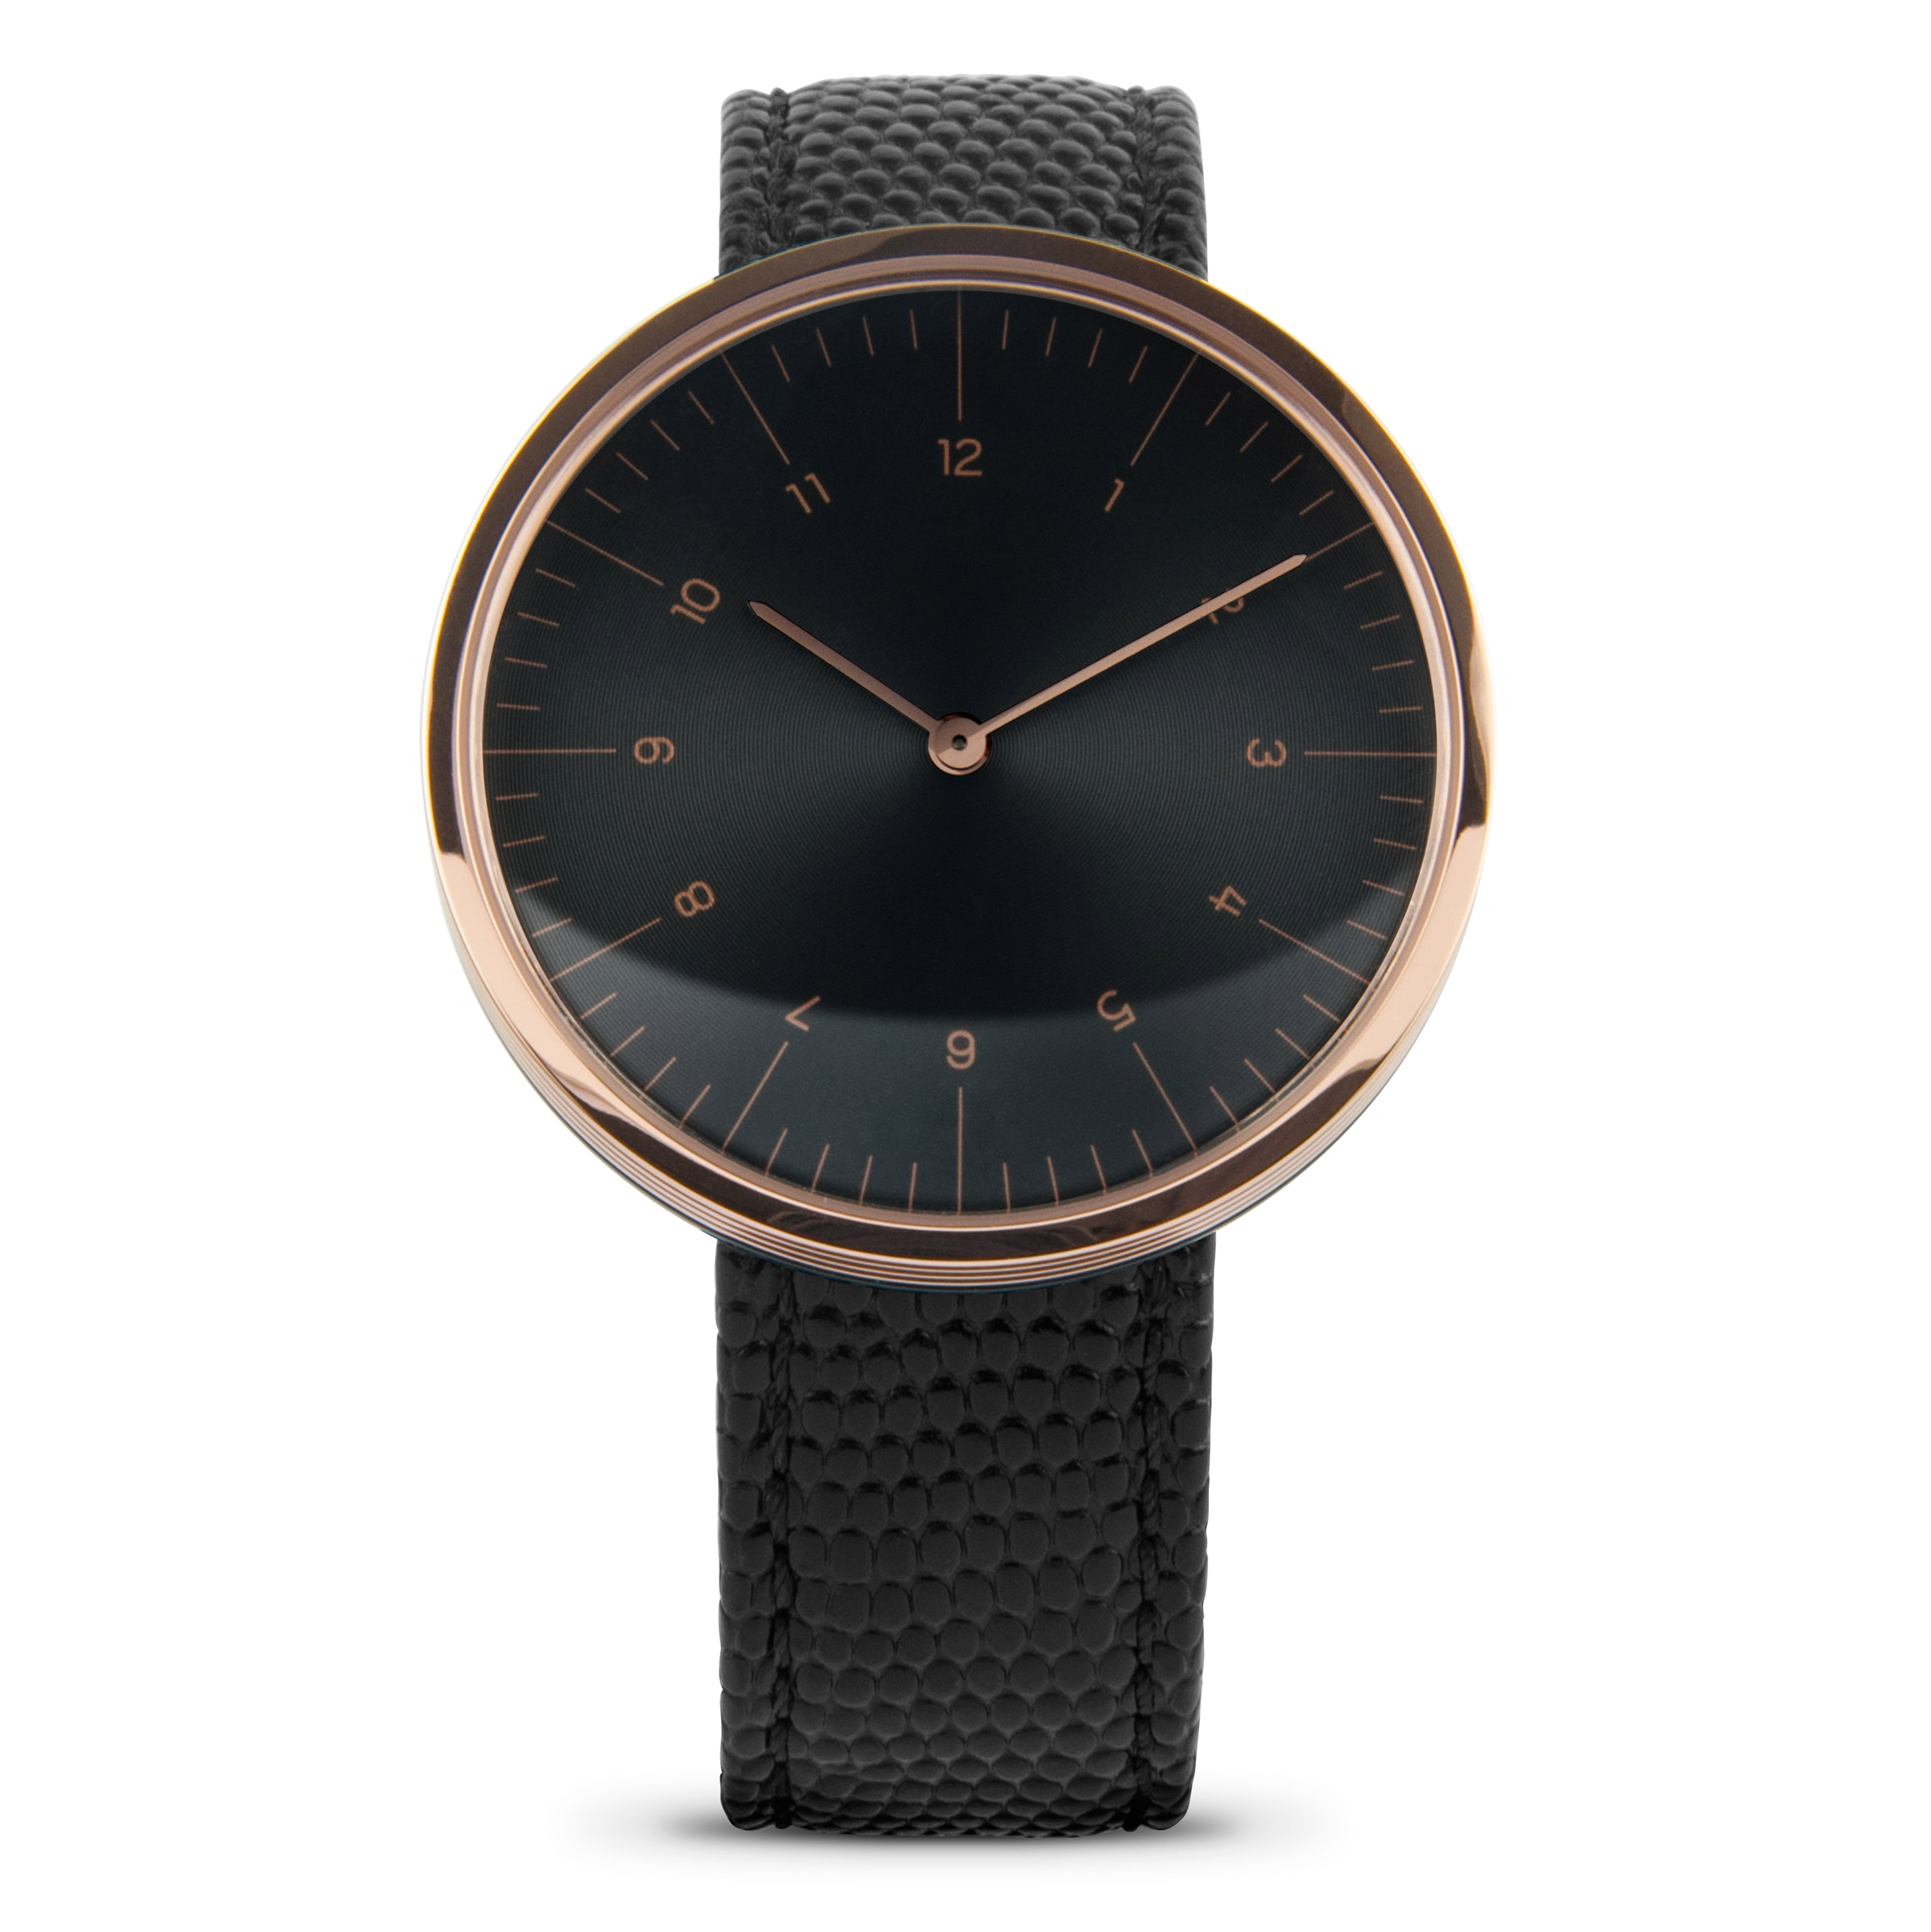 MMT Store Launches Limited Edition Watch Inspired by Art Deco Era mmt store MMT Store Launches Limited Edition Watch Inspired by Art Deco Era MMT Launches Limited Edition Watch Inspired by Art Deco Era 3